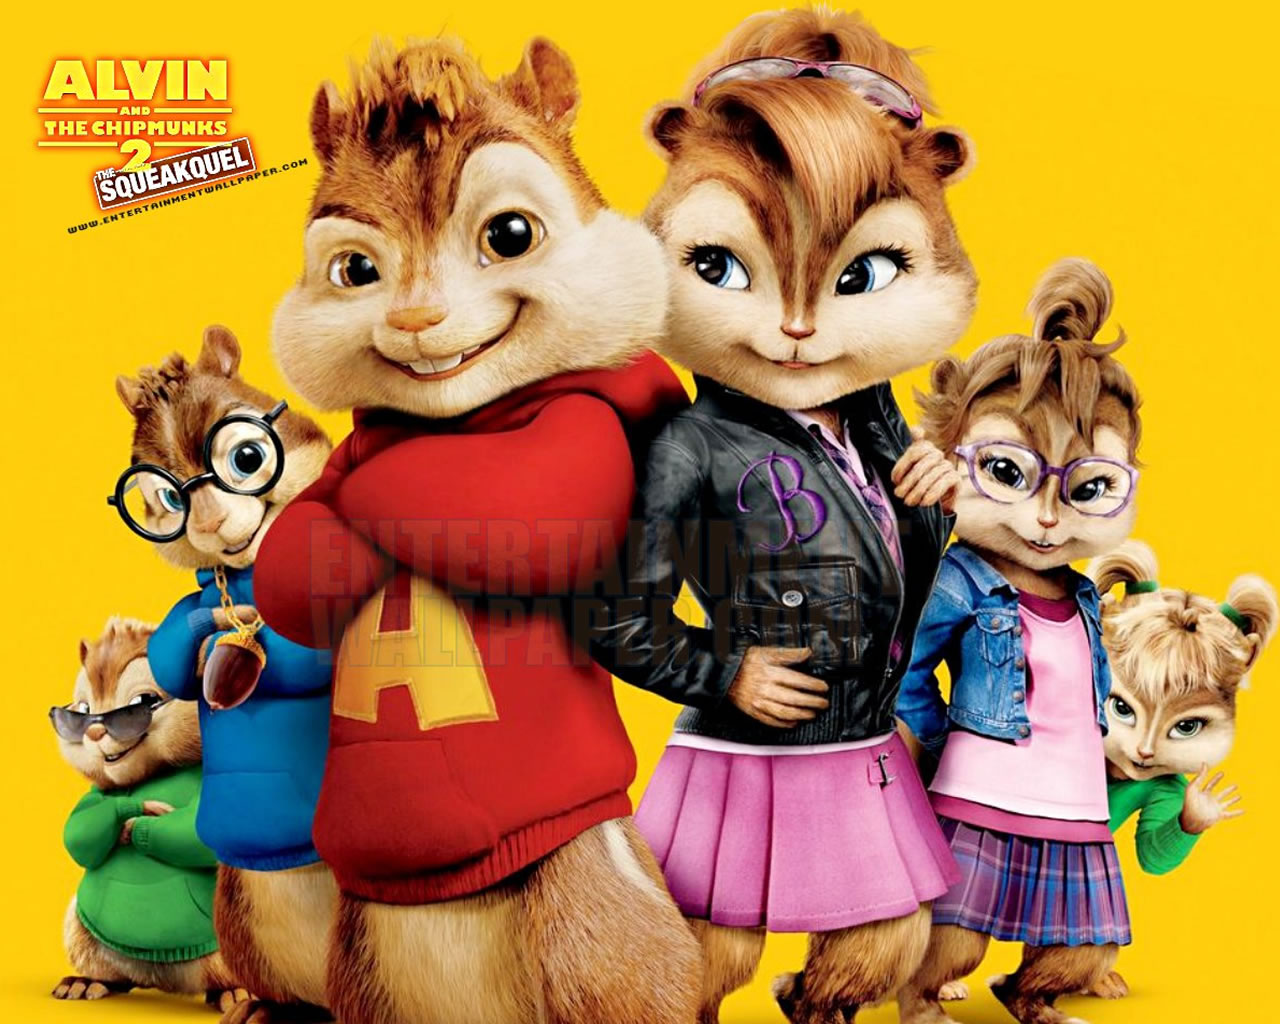 alvin and the chipmunks-#6